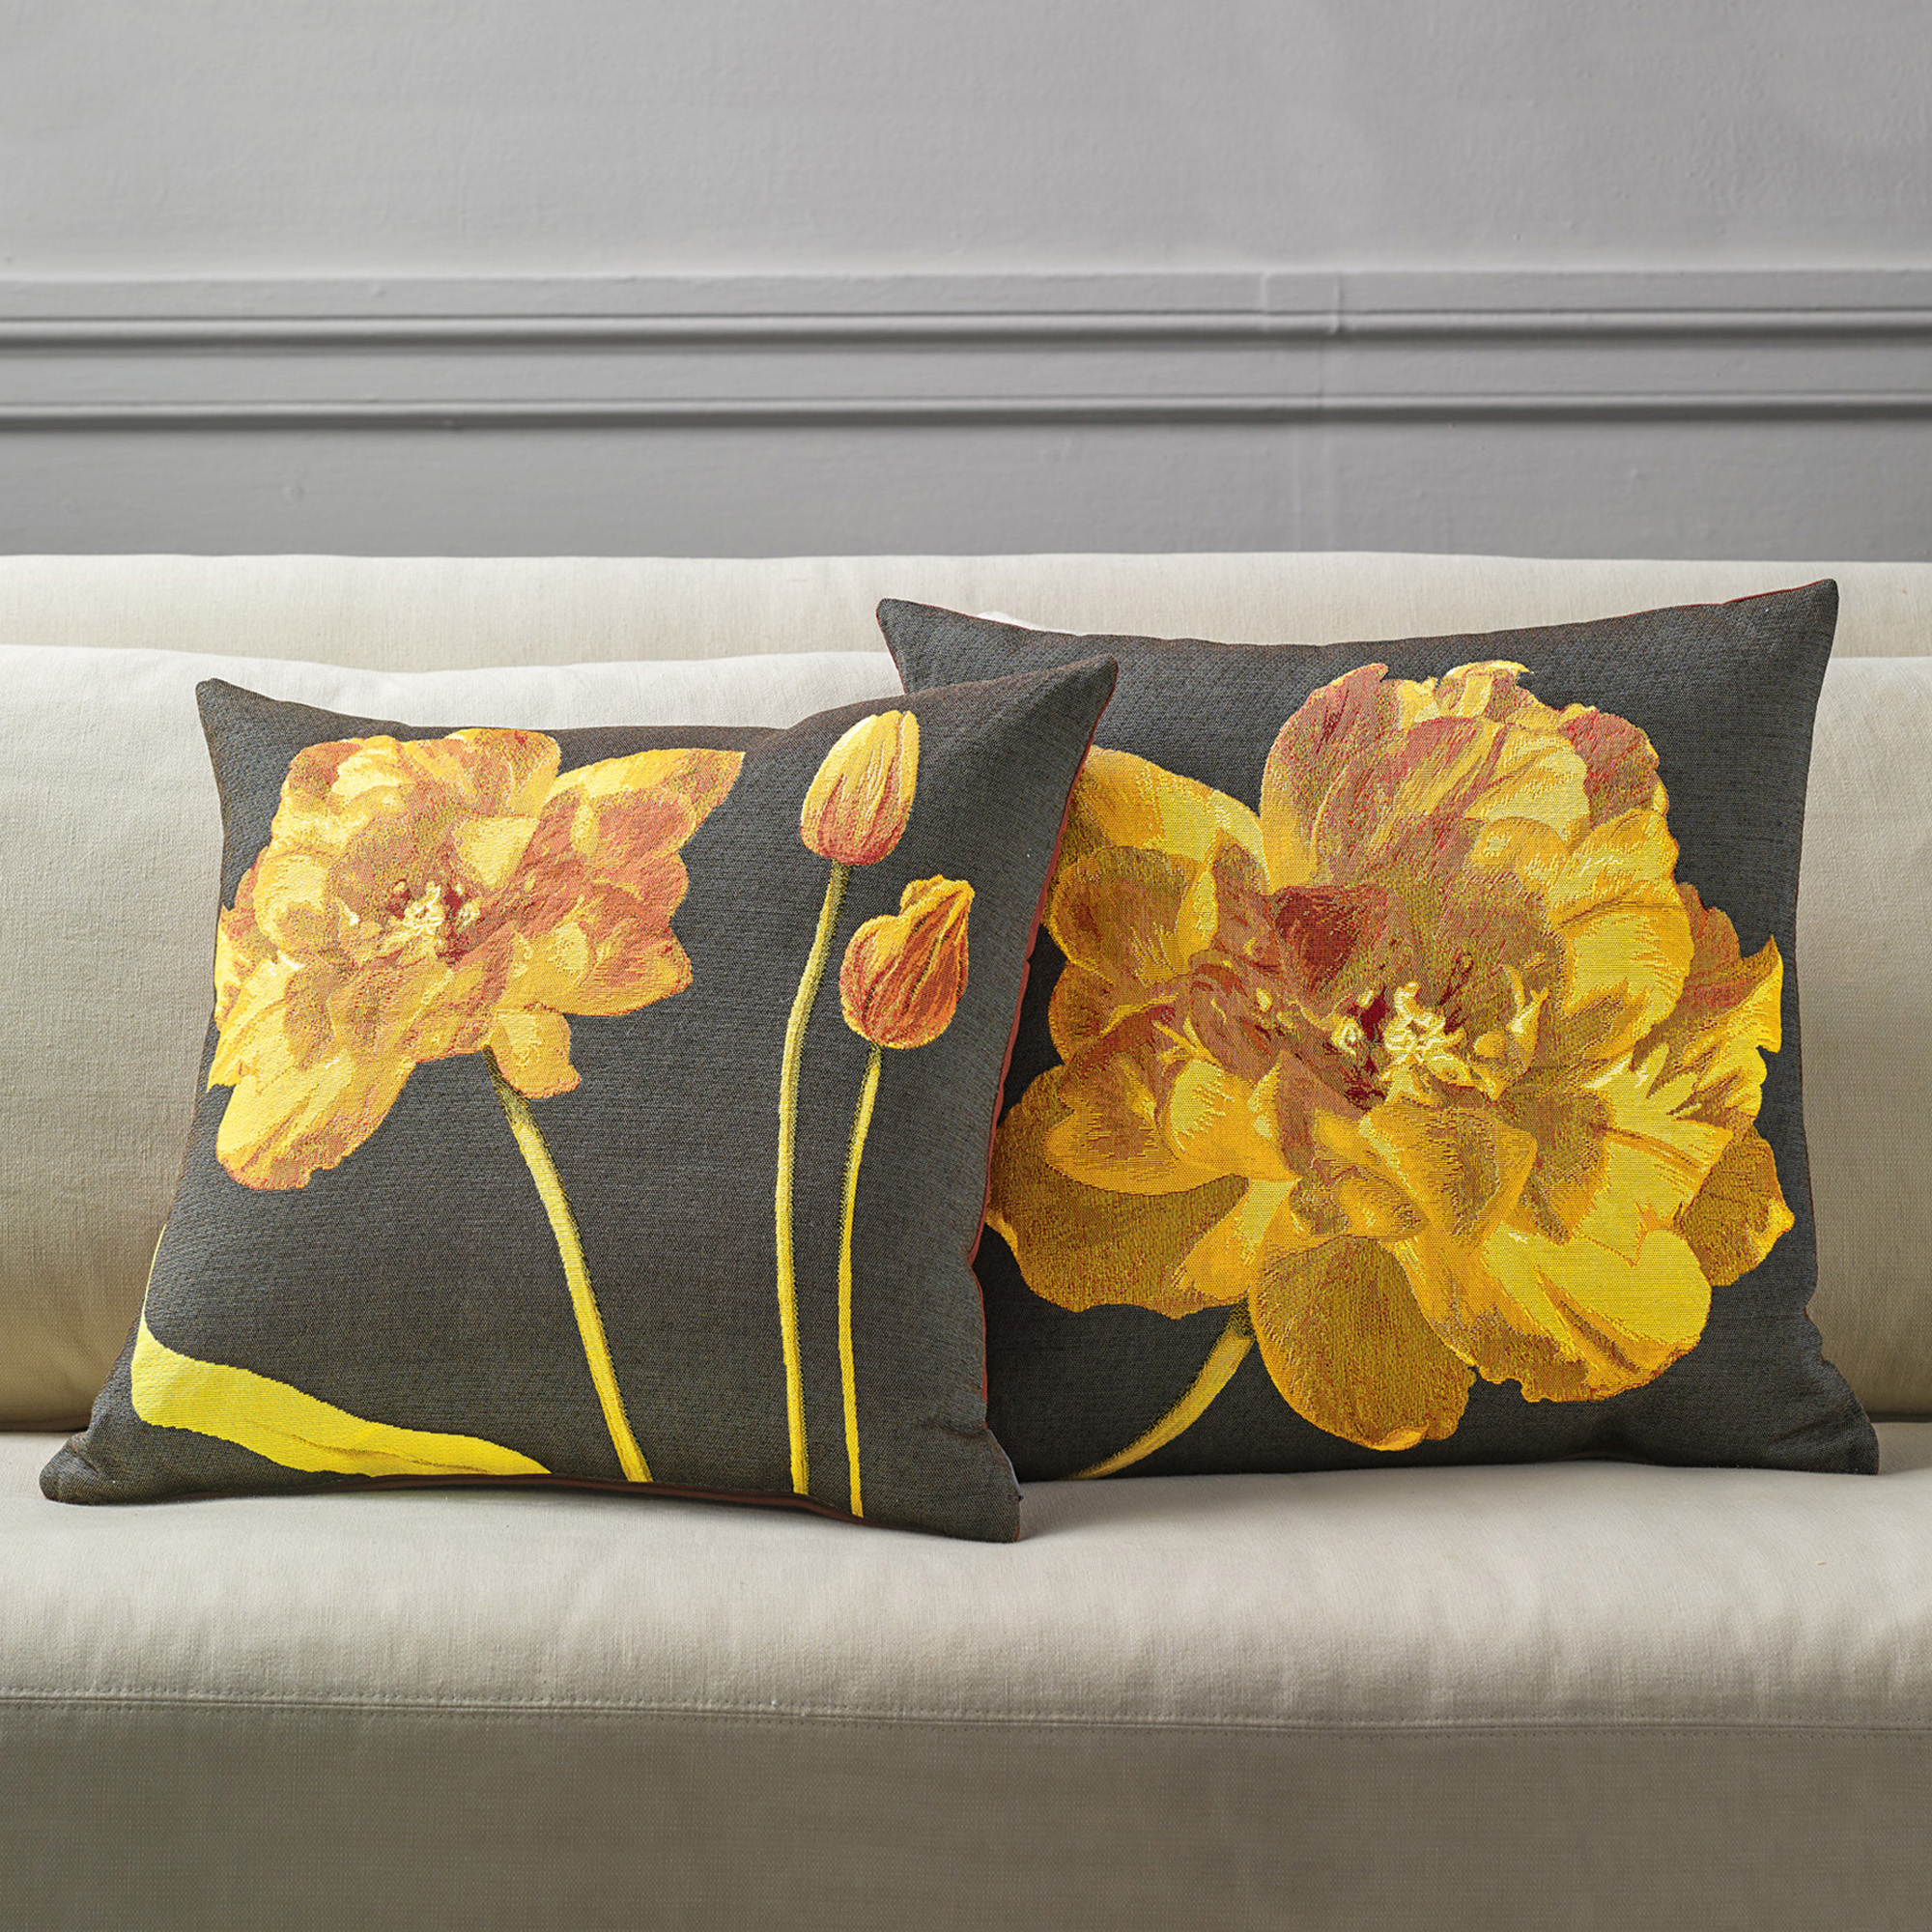 Covent Garden Tapestry Pillows